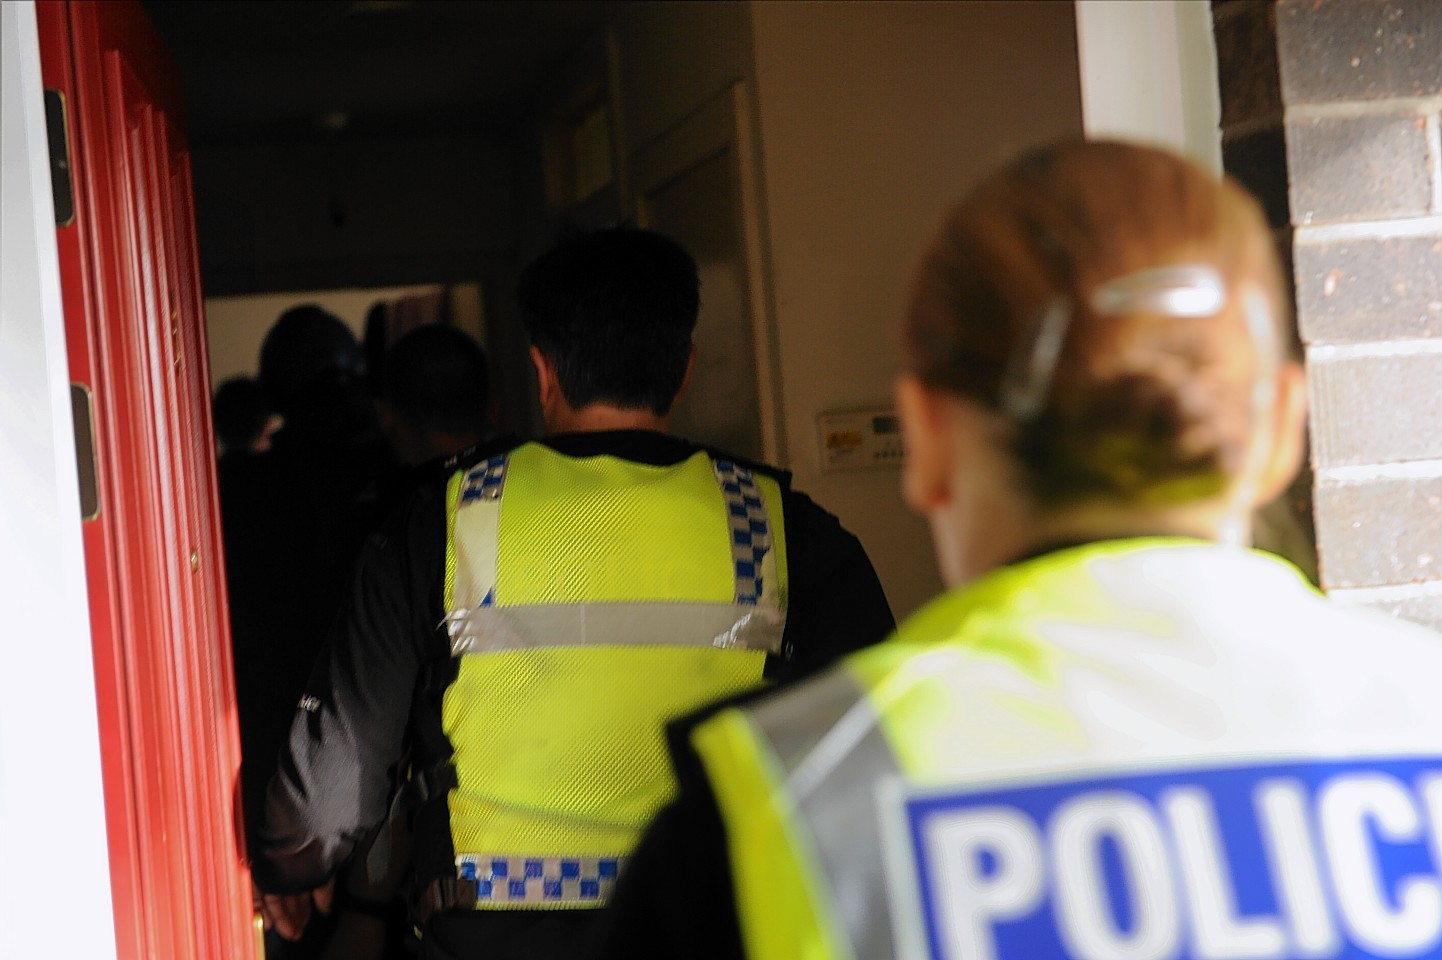 Police Scotland carried out a series of drug raids on properties in recent months